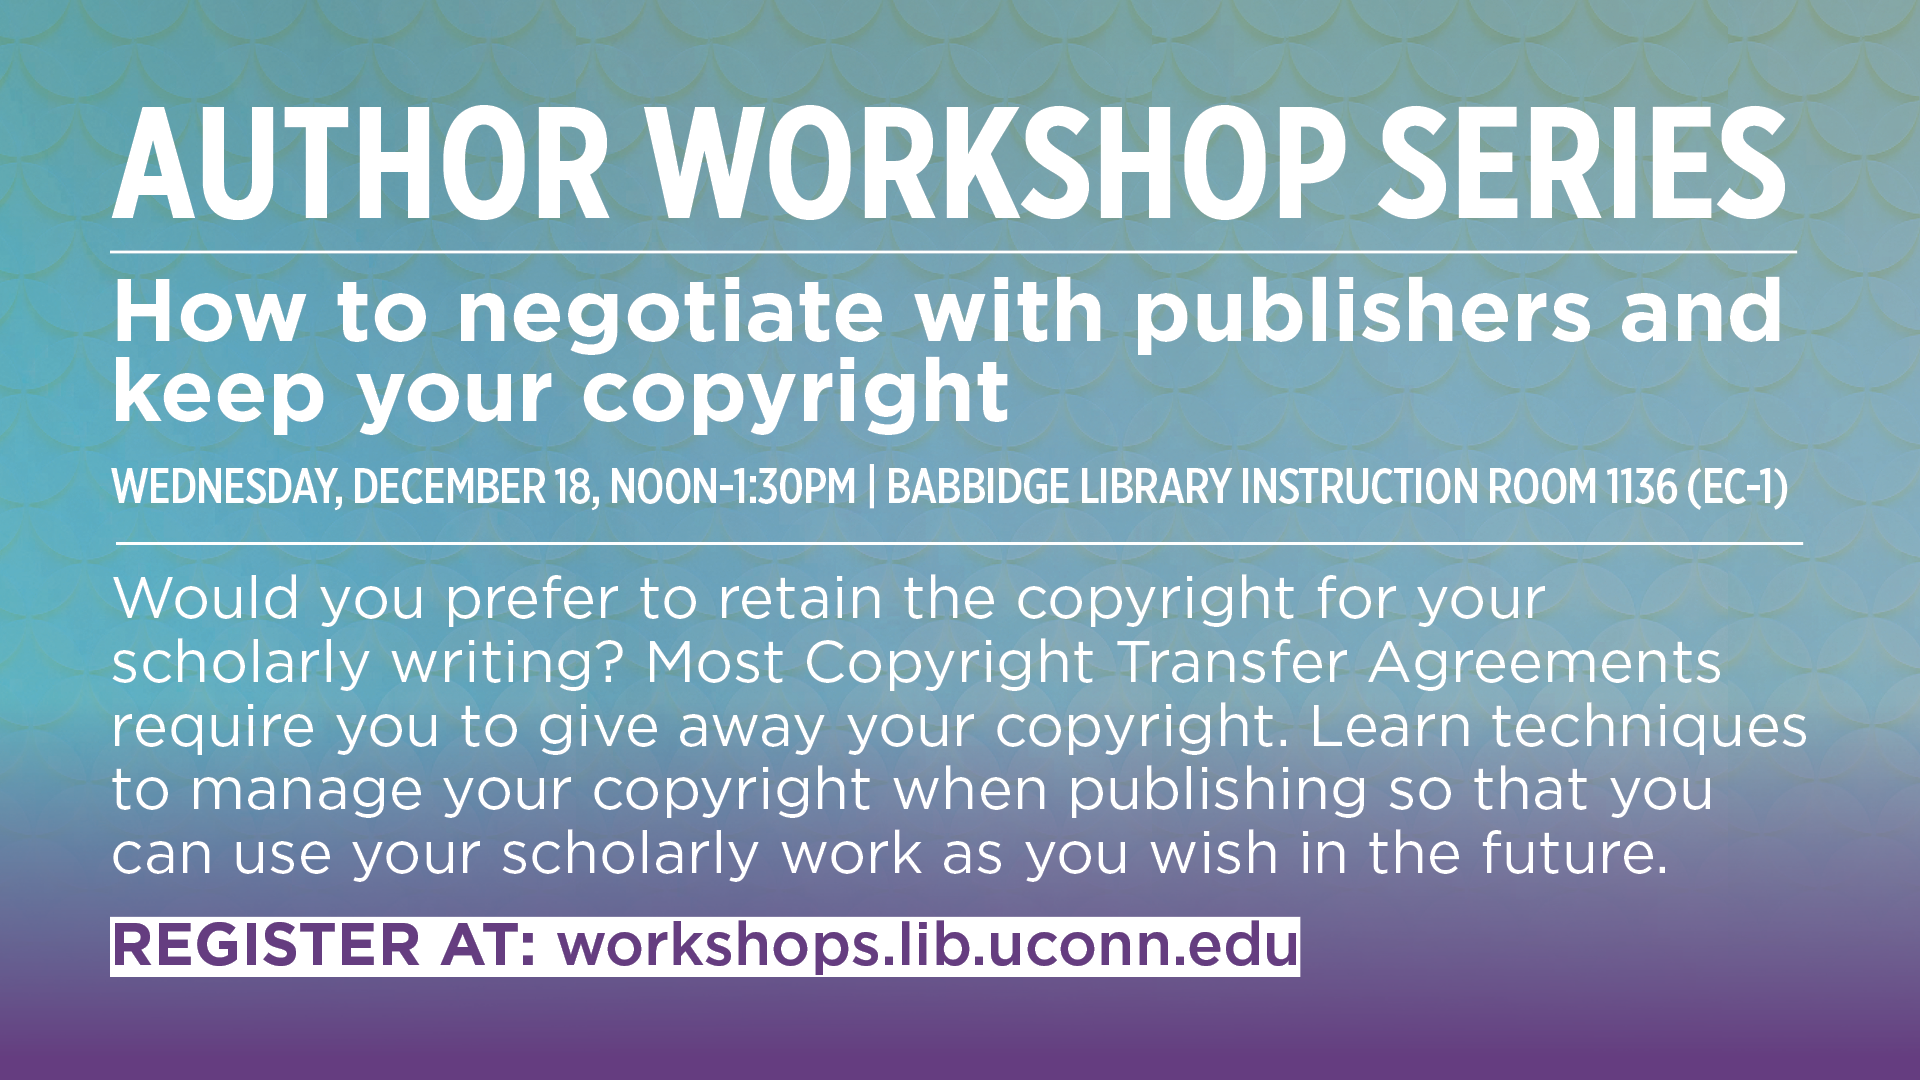 AUTHOR WORKSHOP SERIES How to negotiate with publishers and keep your copyright WEDNESDAY, DECEMBER 18, NOON-1:30PM | BABBIDGE LIBRARY INSTRUCTION ROOM 1136 (EC-1) Would you prefer to retain the copyright for your scholarly writing? Most Copyright Transfer Agreements require you to give away your copyright. Learn techniques to manage your copyright when publishing so that you can use your scholarly work as you wish in the future. REGISTER AT: workshops.lib.uconn.edu